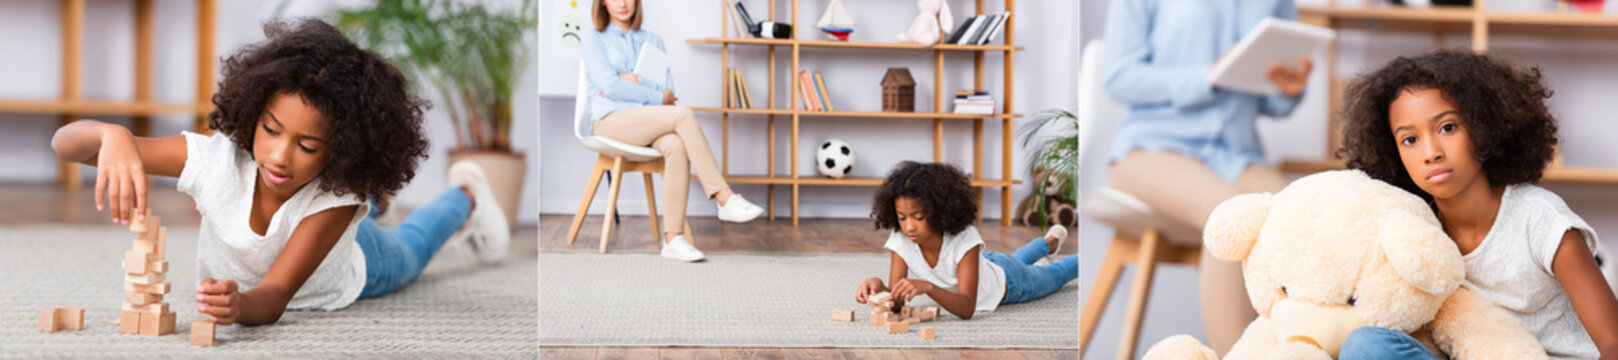 Collage of african american girl looking at camera near teddy bear and playing with wooden blocks on floor on blurred background, banner